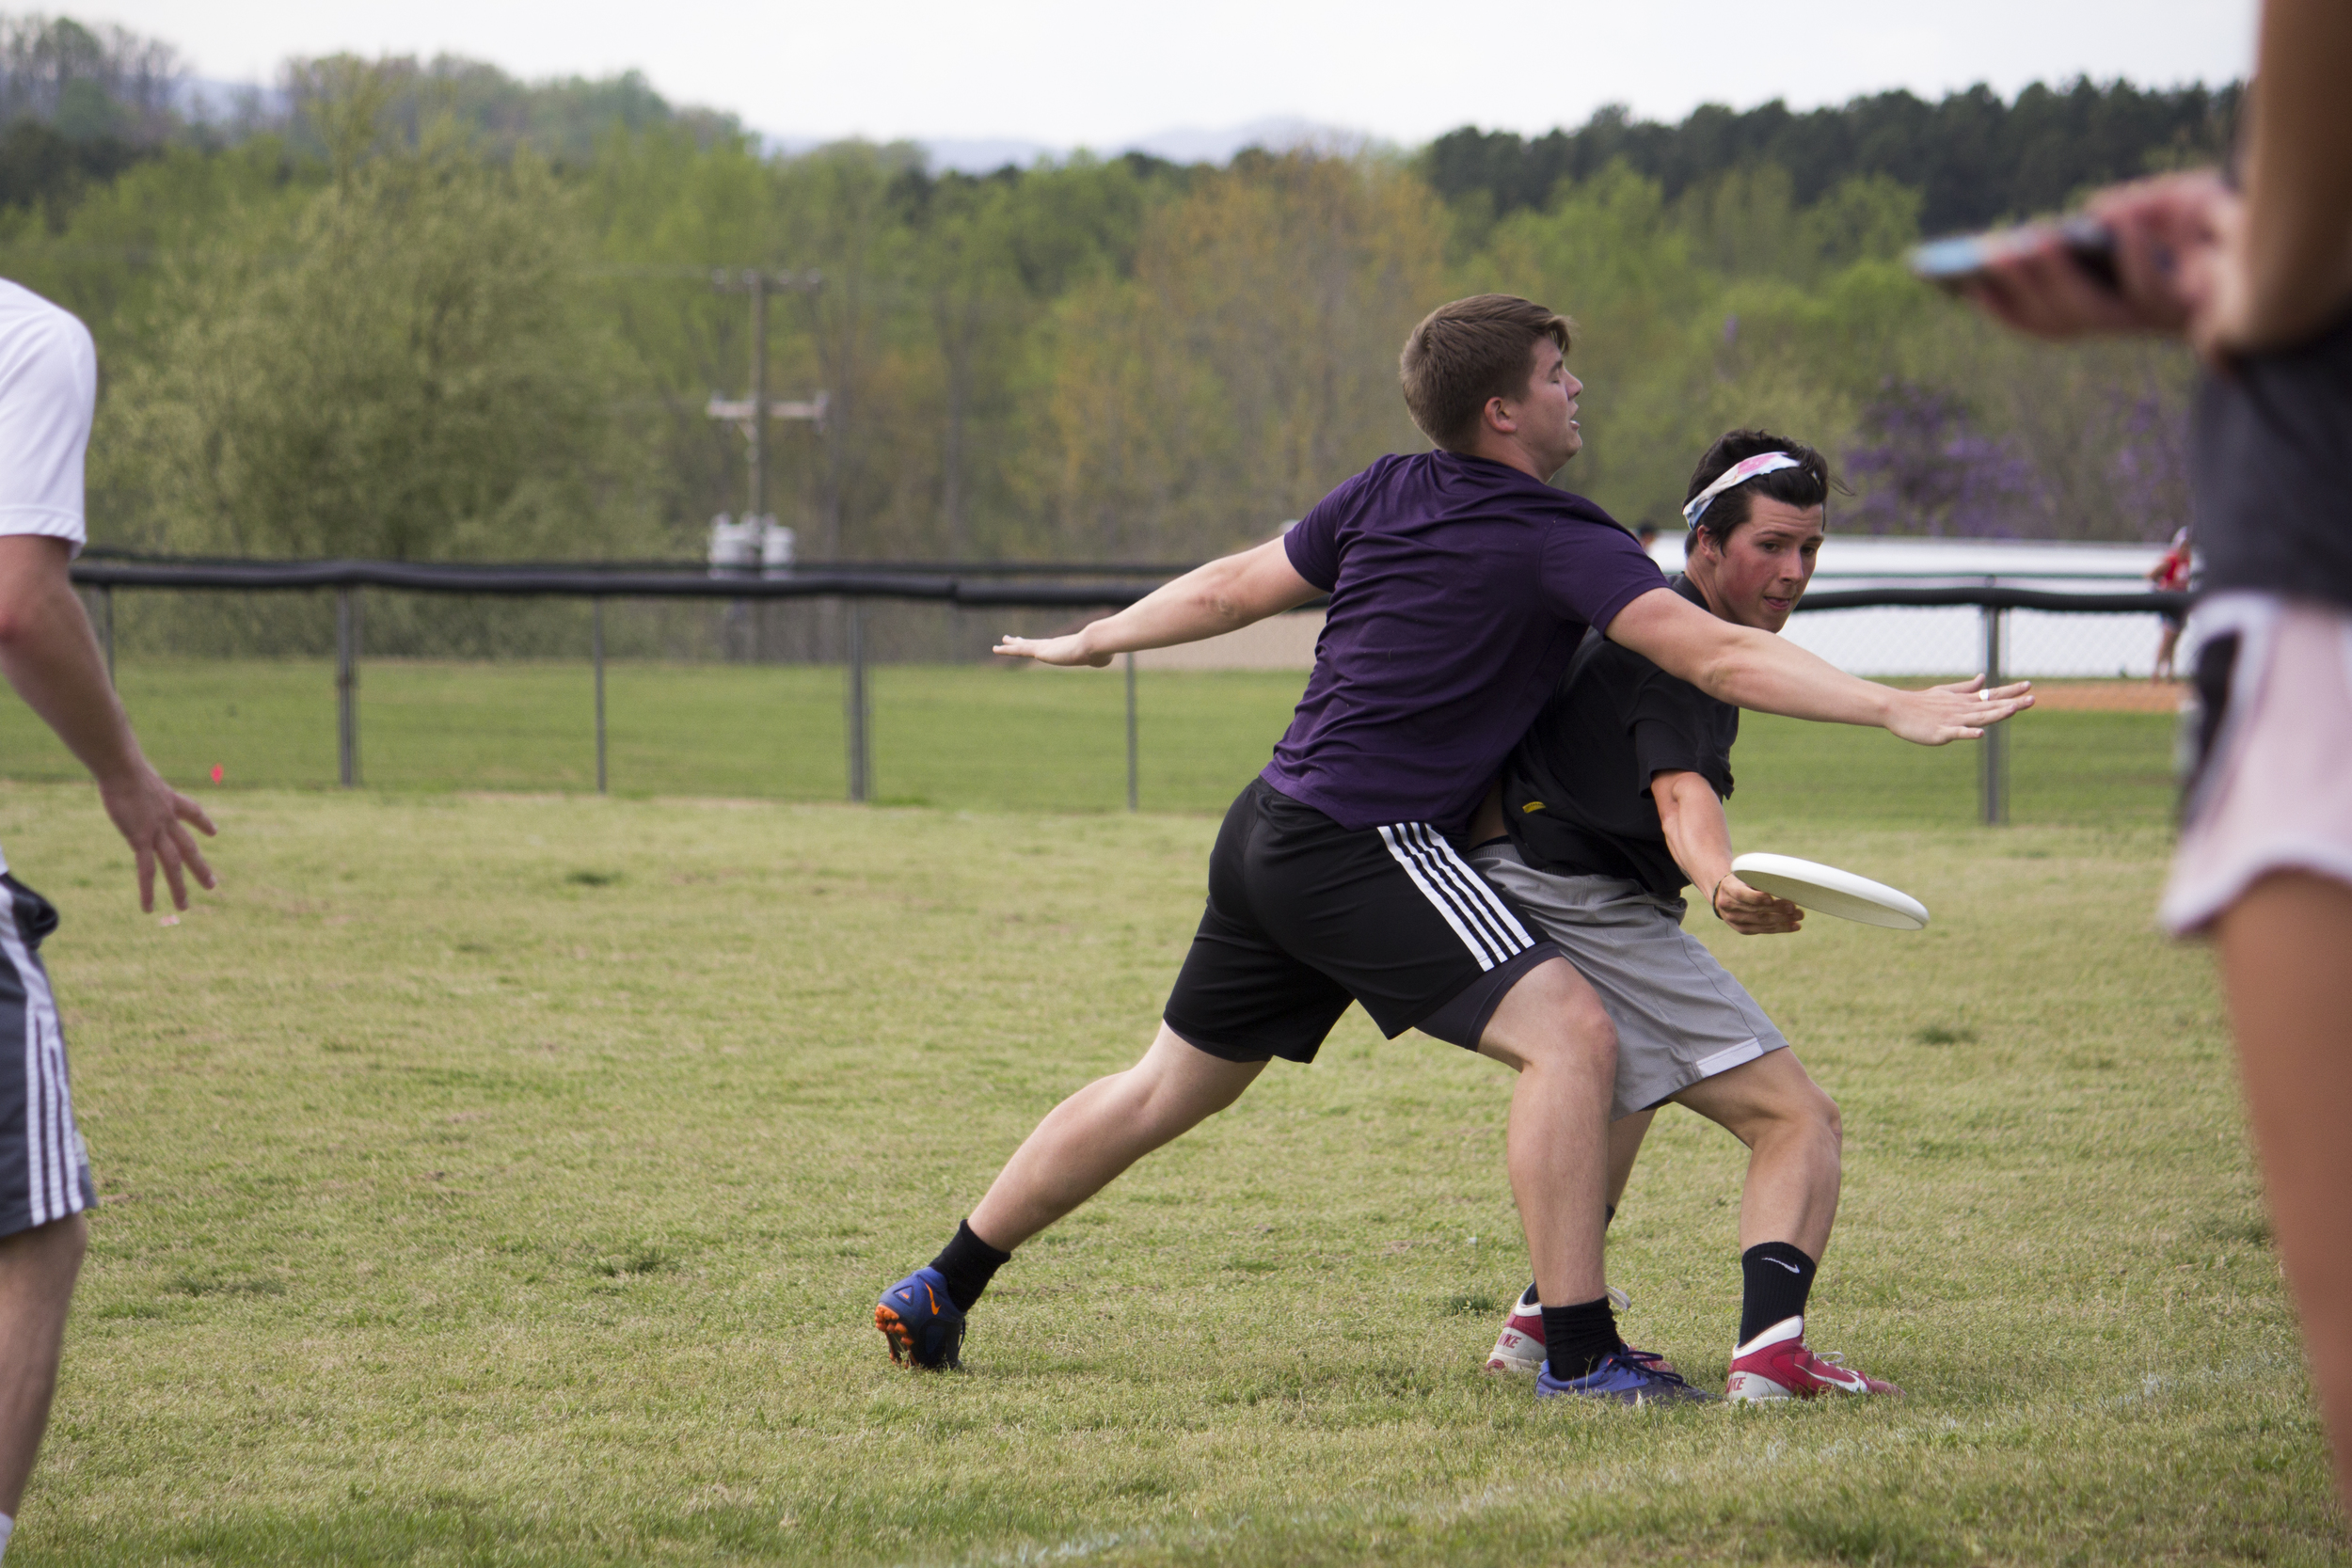 Sophomore Charlie Mitchell tries to block a throw from being completed.